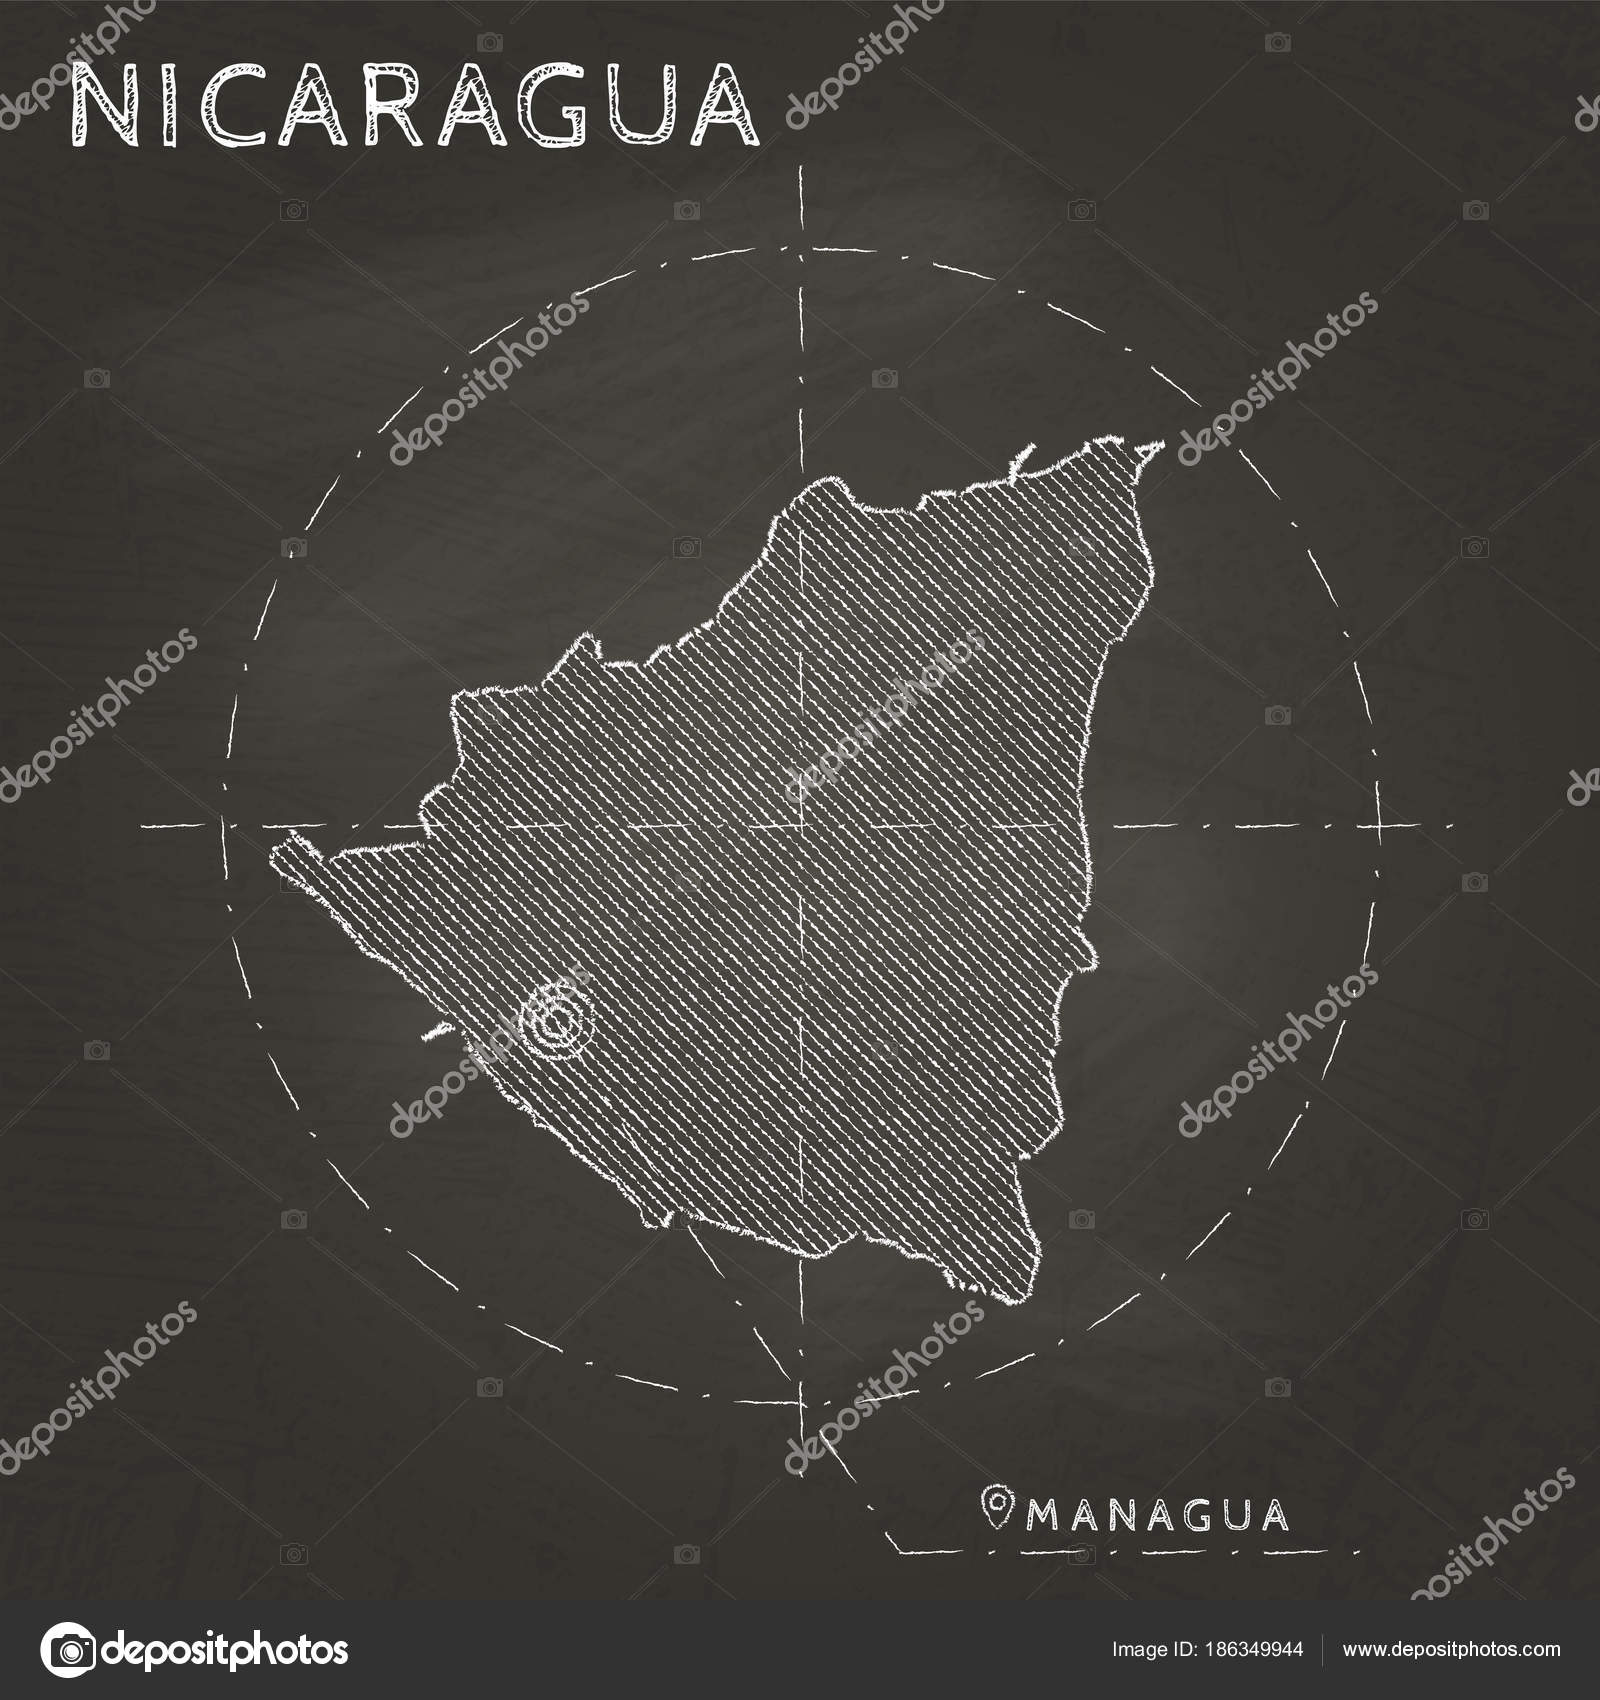 Nicaragua chalk map with capital marked hand drawn on textured ...